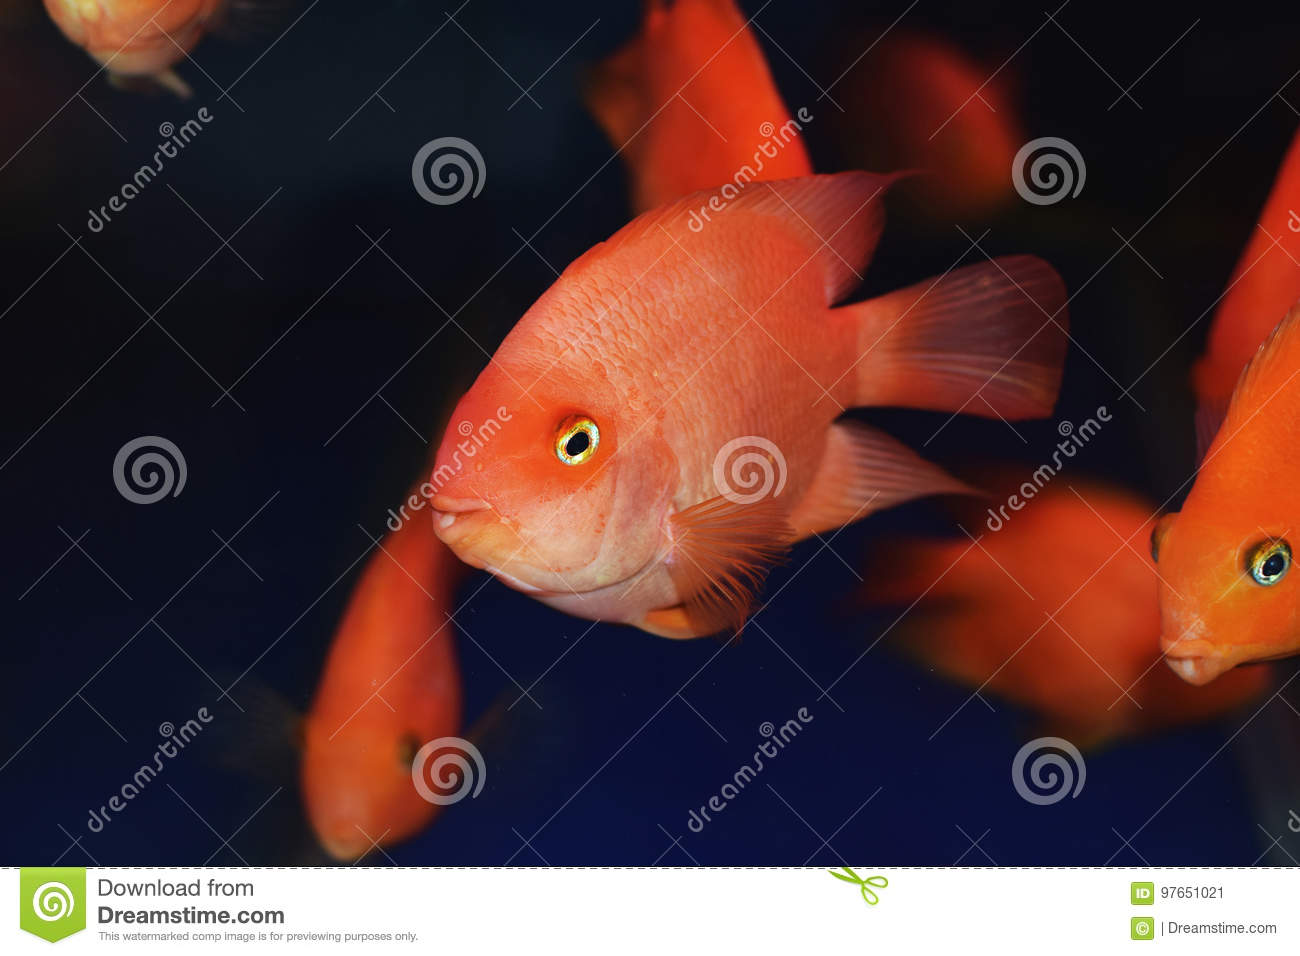 Lovely cute parrot fish stock image. Image of nature - 97651021